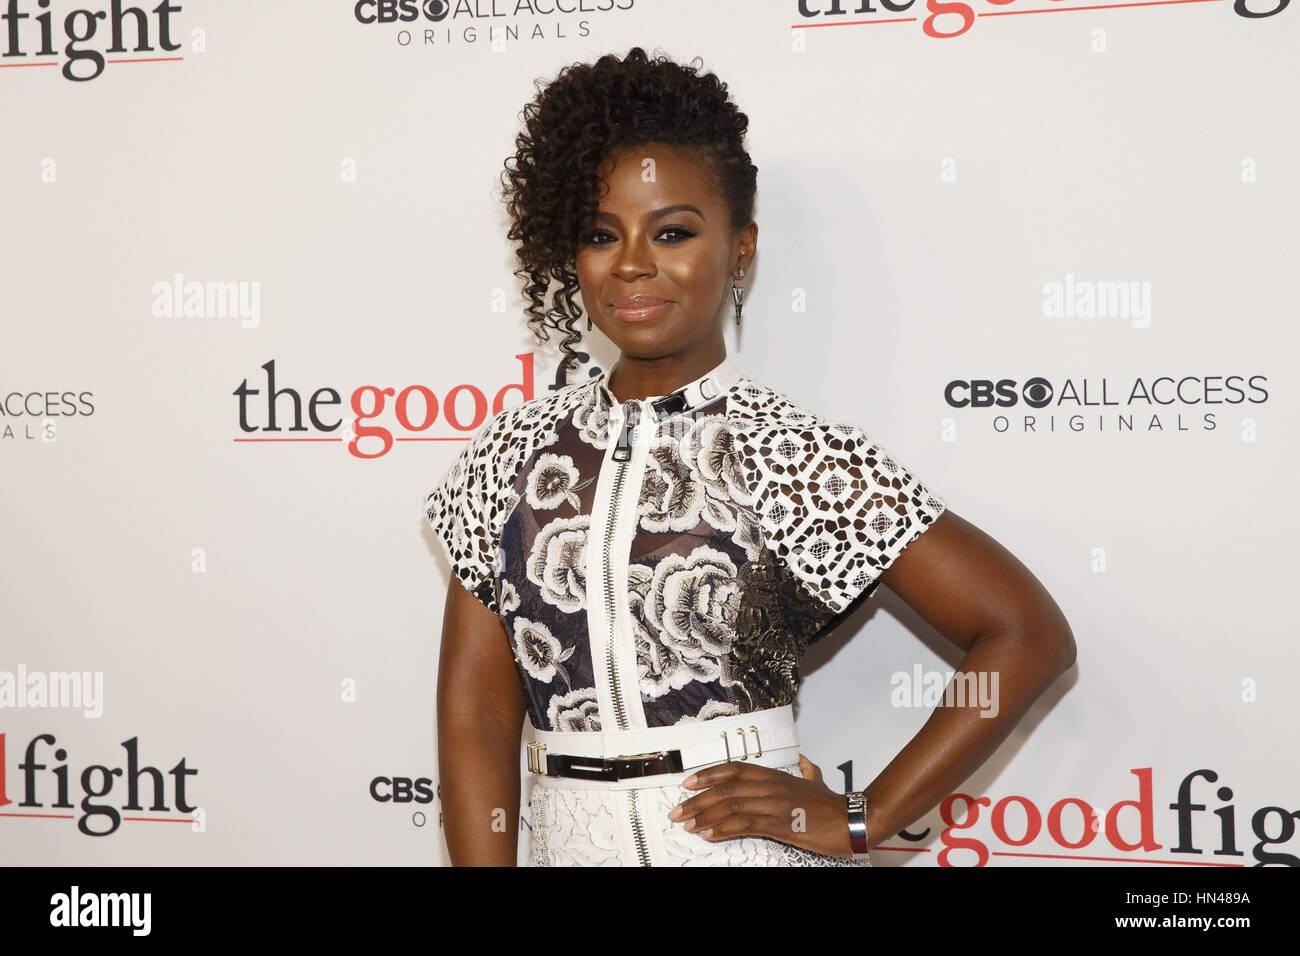 New York Ny Usa 8th Feb 2017 Erica Tazel At Arrivals For The Stock Photo Alamy Jessica williams in jericho (tv series). alamy